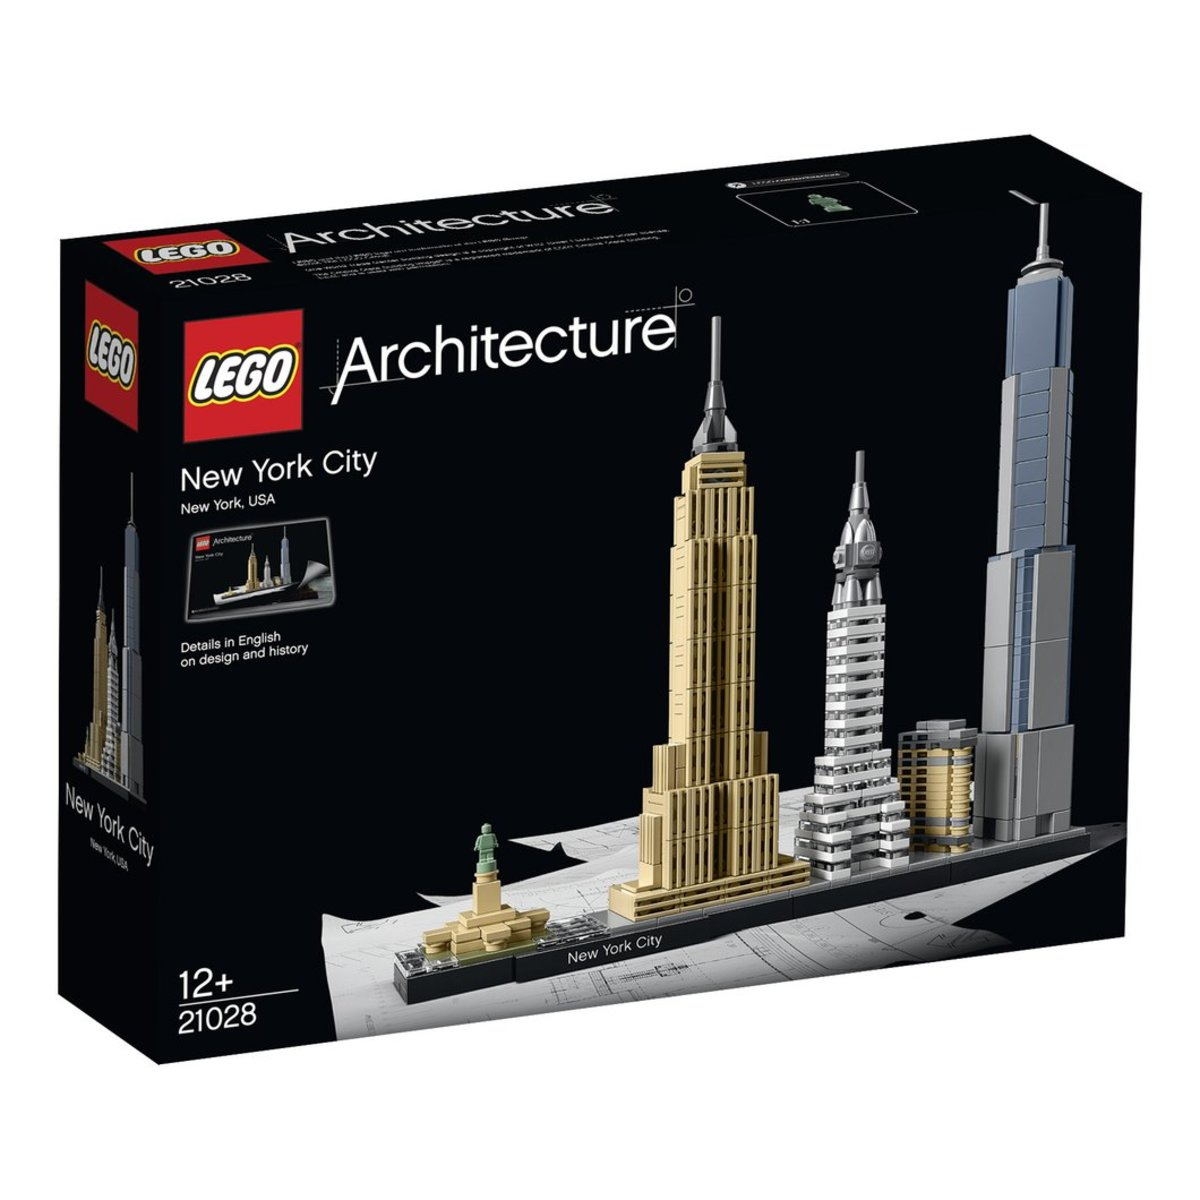 LEGO 21028 Architecture - New York City